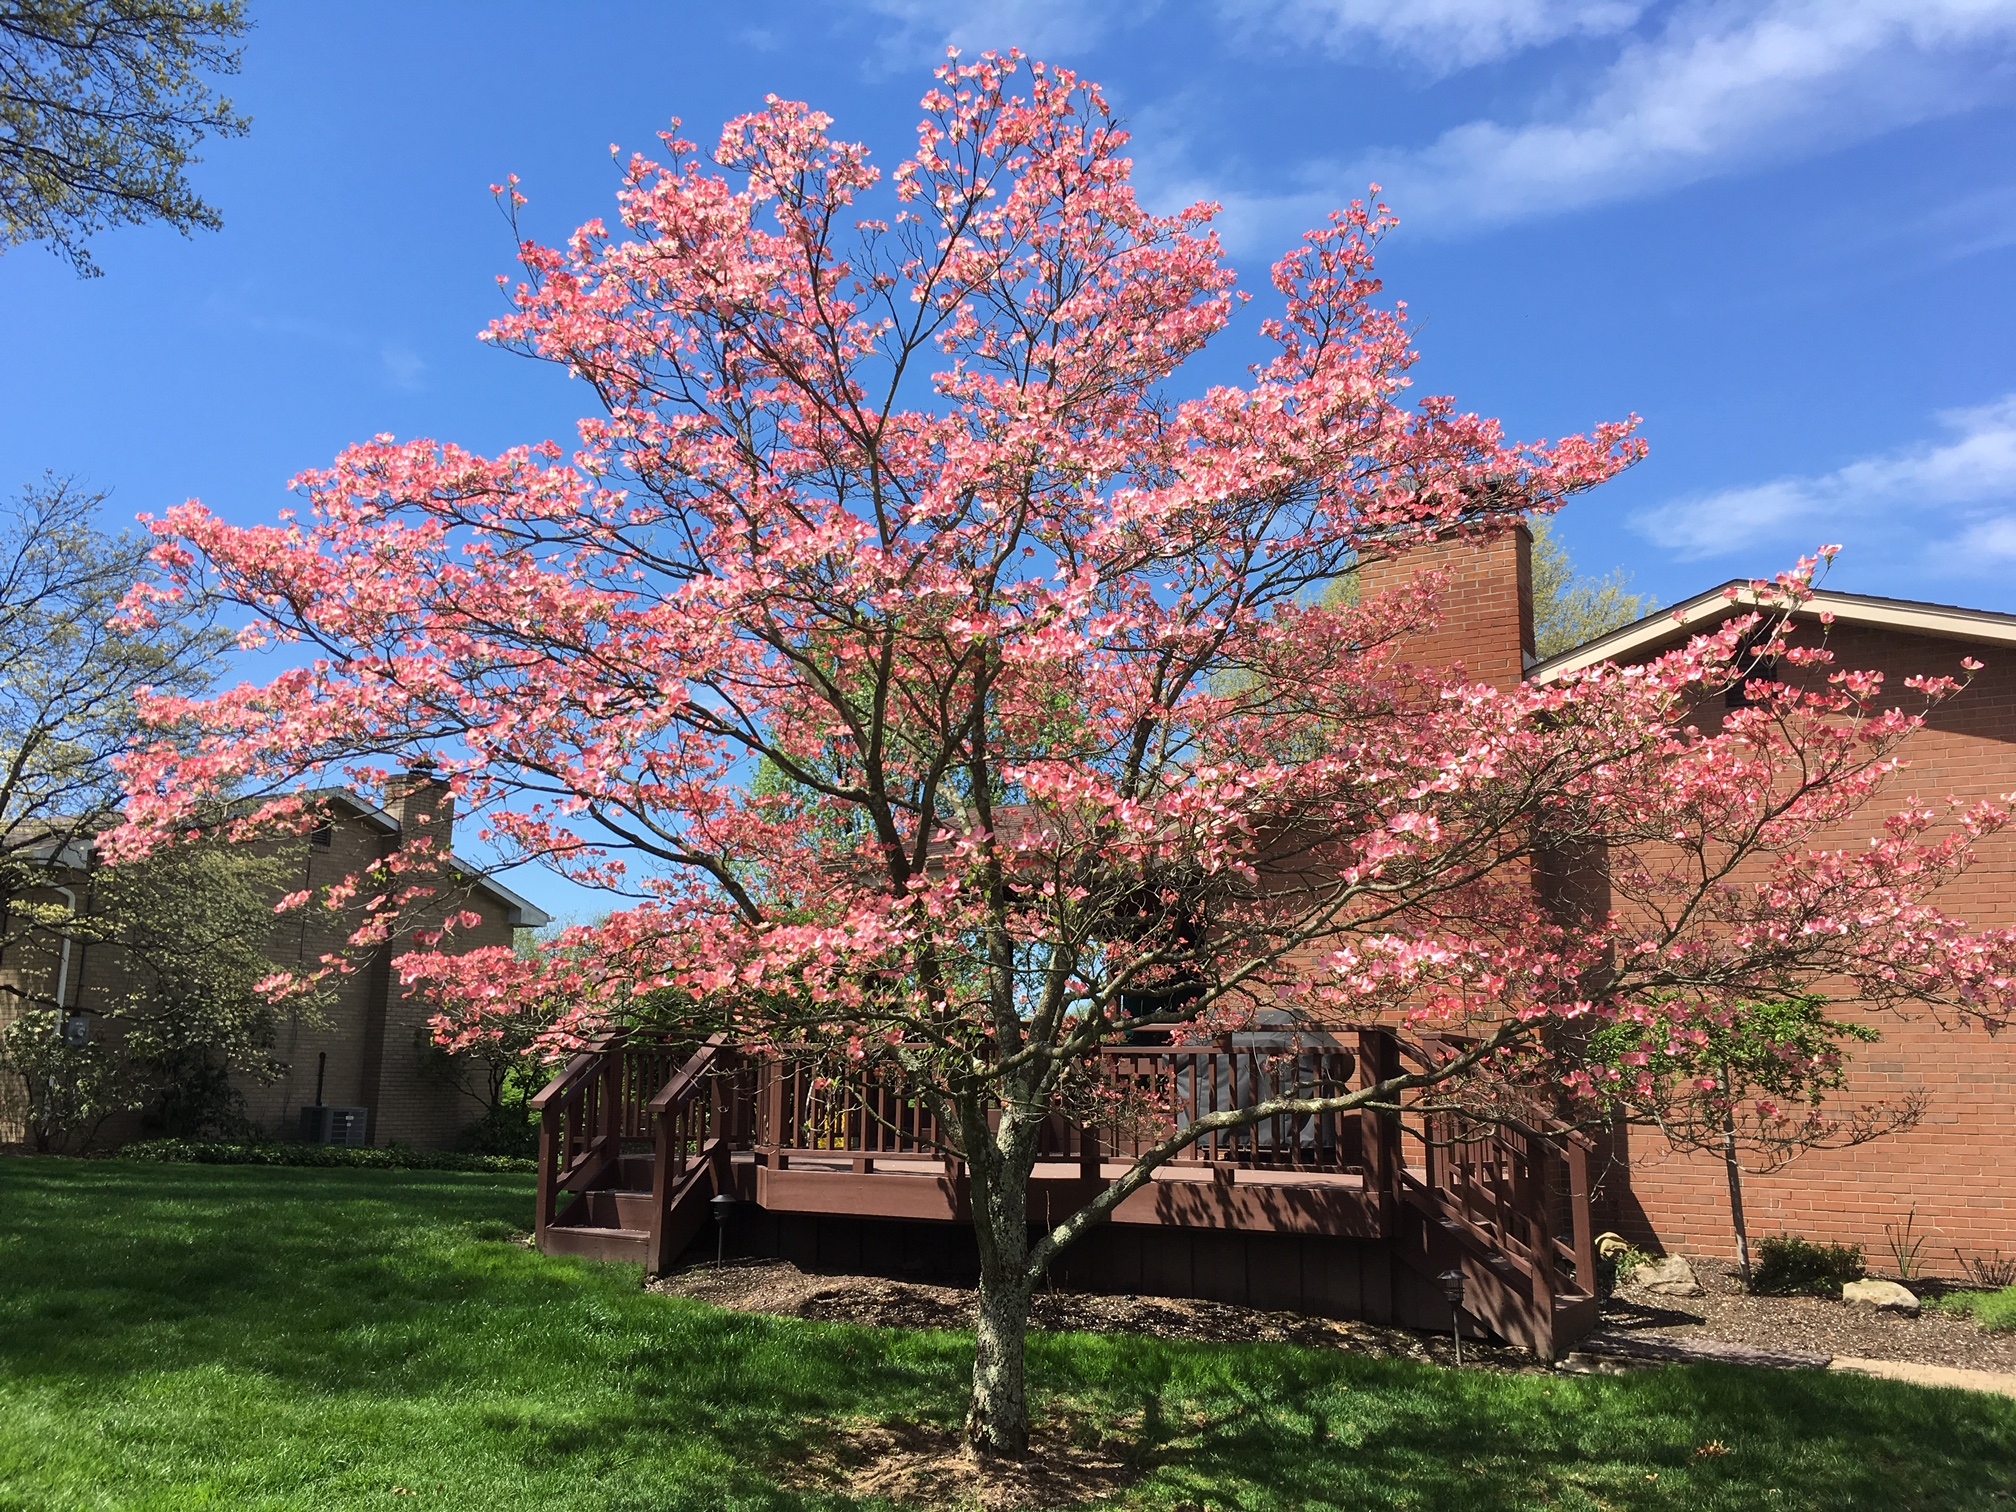 Flowering dogwoods are having an exceptional Spring!